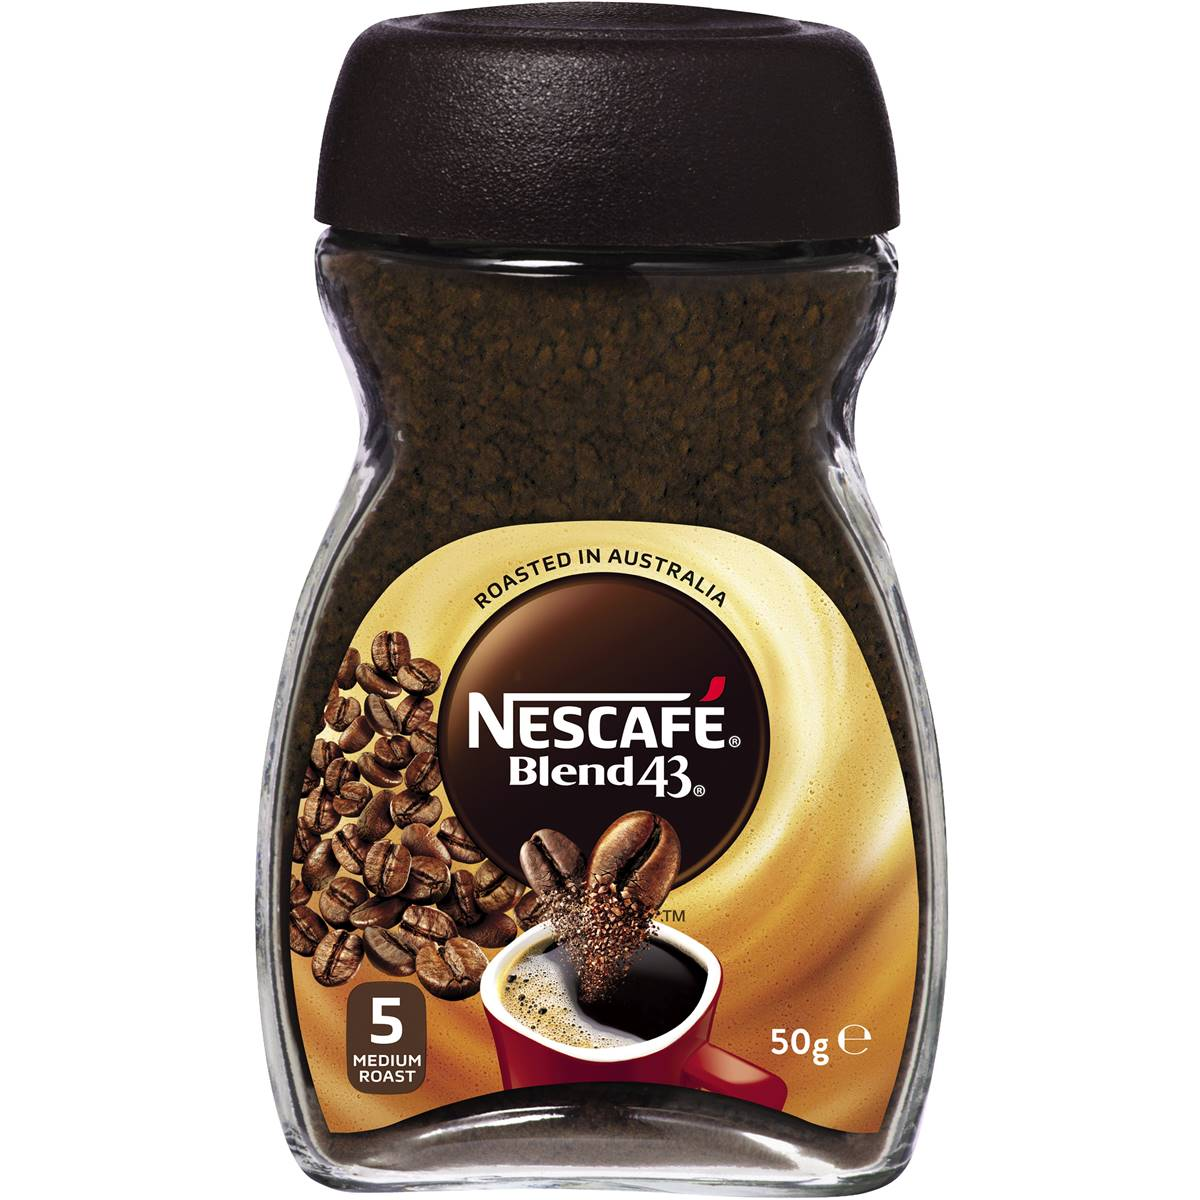 Nescafe Instant Arabica Coffee Nescafe Blend 43 Instant Coffee Coffee 50g Woolworths